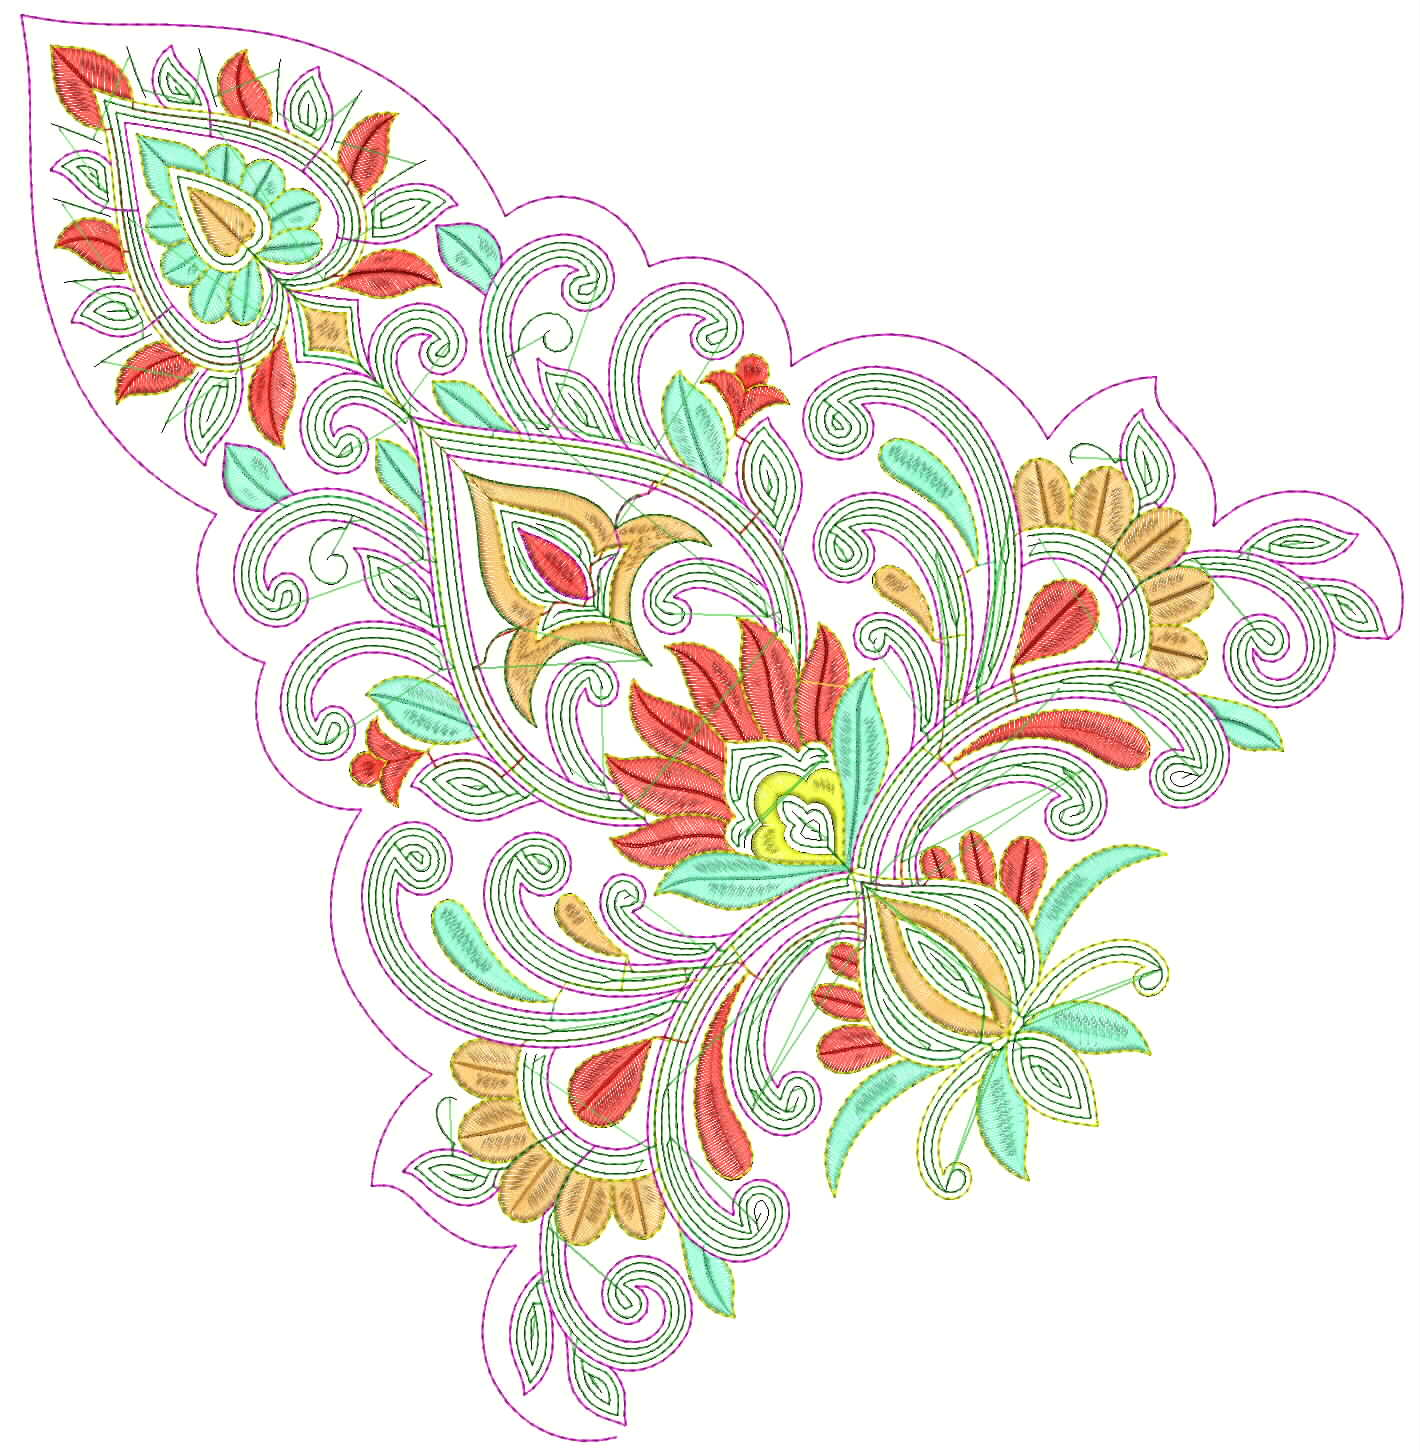 Embdesigntube ready to use patch embroidery design